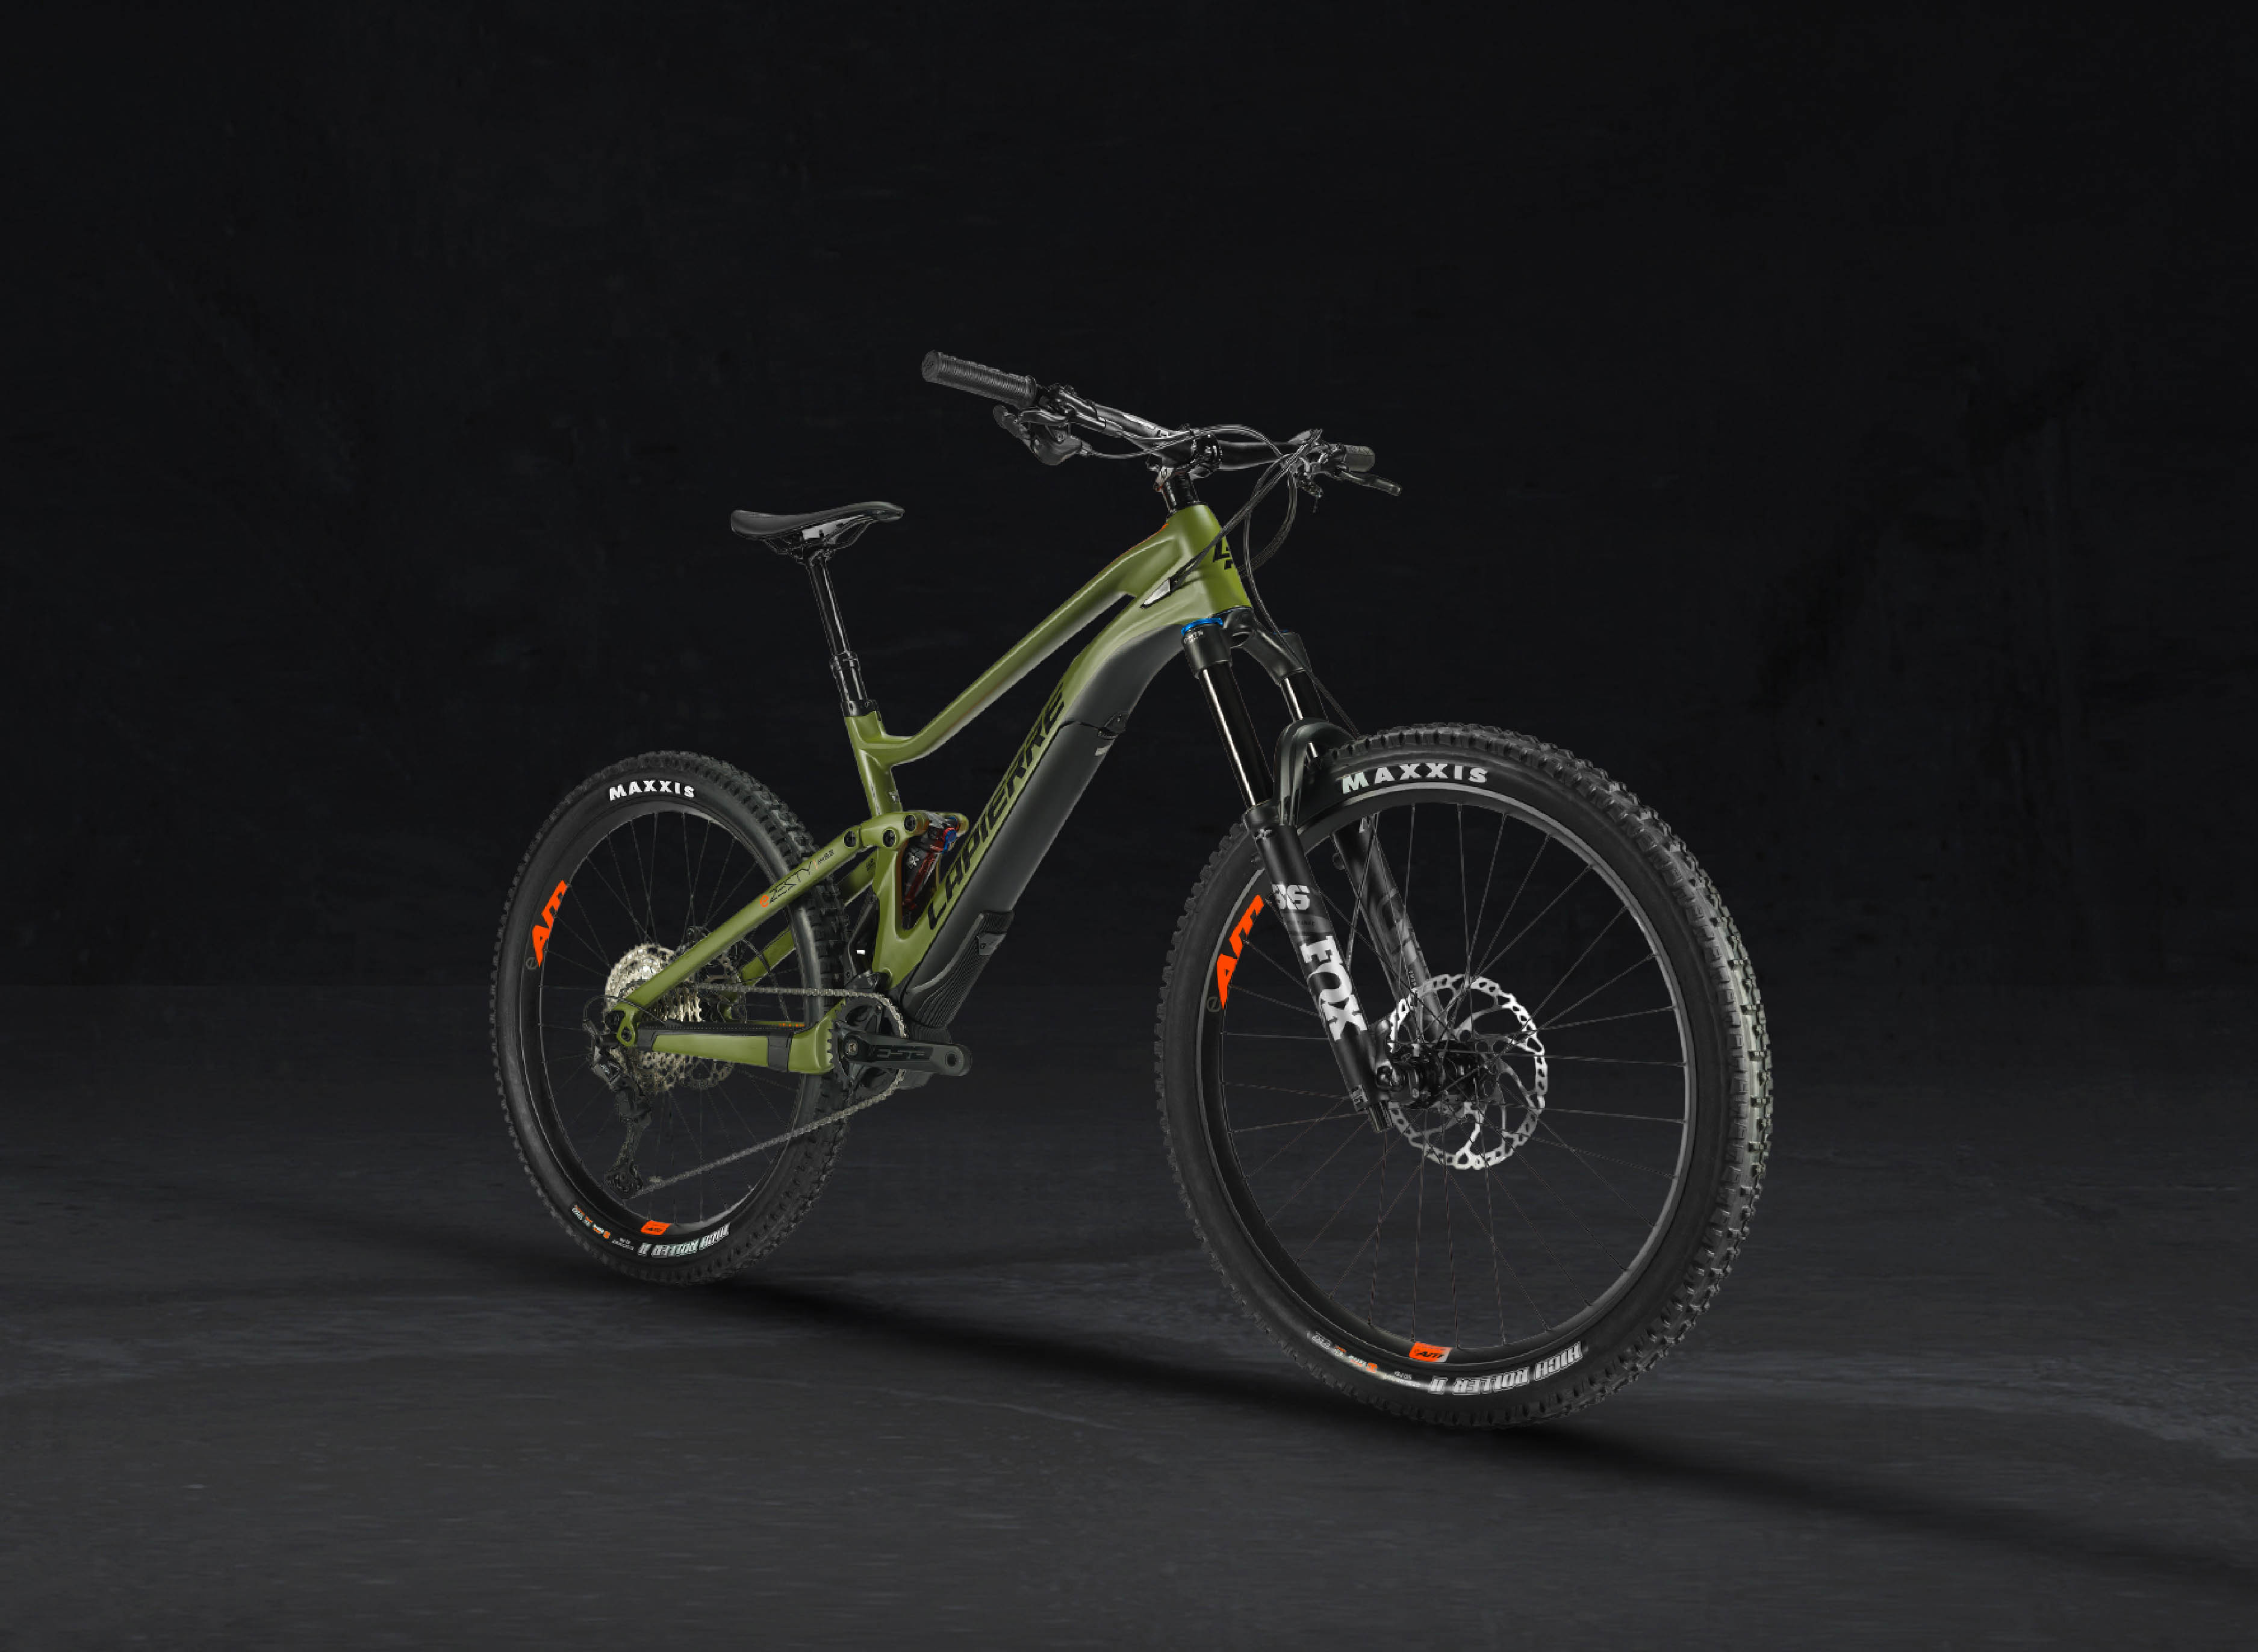 Right side 3/4 view of a Lapierre eZesty AM 9.2 electric mountain bike